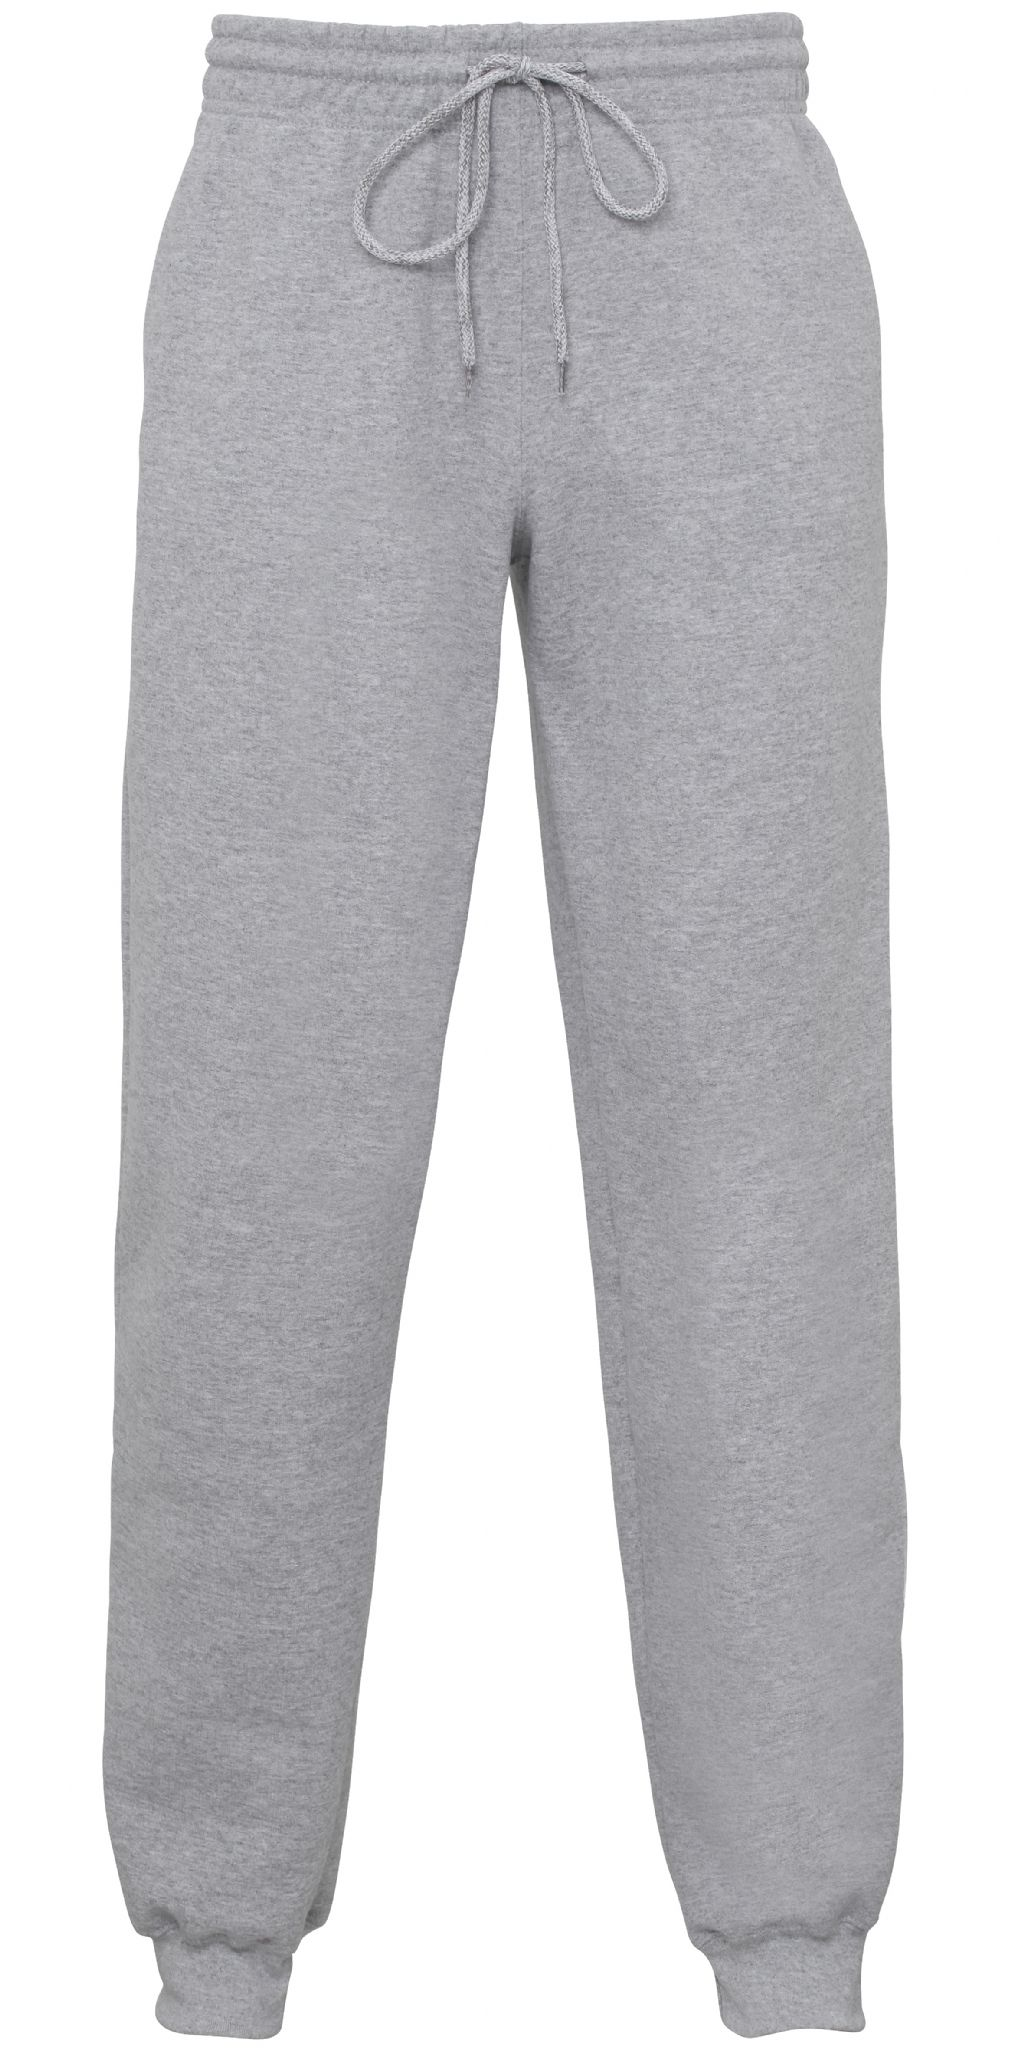 Shop Nike Men's Fleece Cuffed Bottom Pants online at ajaykumarchejarla.ml Get comfort without the bulk with these Nike fleece jogger pants, made with soft fleece and an updated look/5(79).